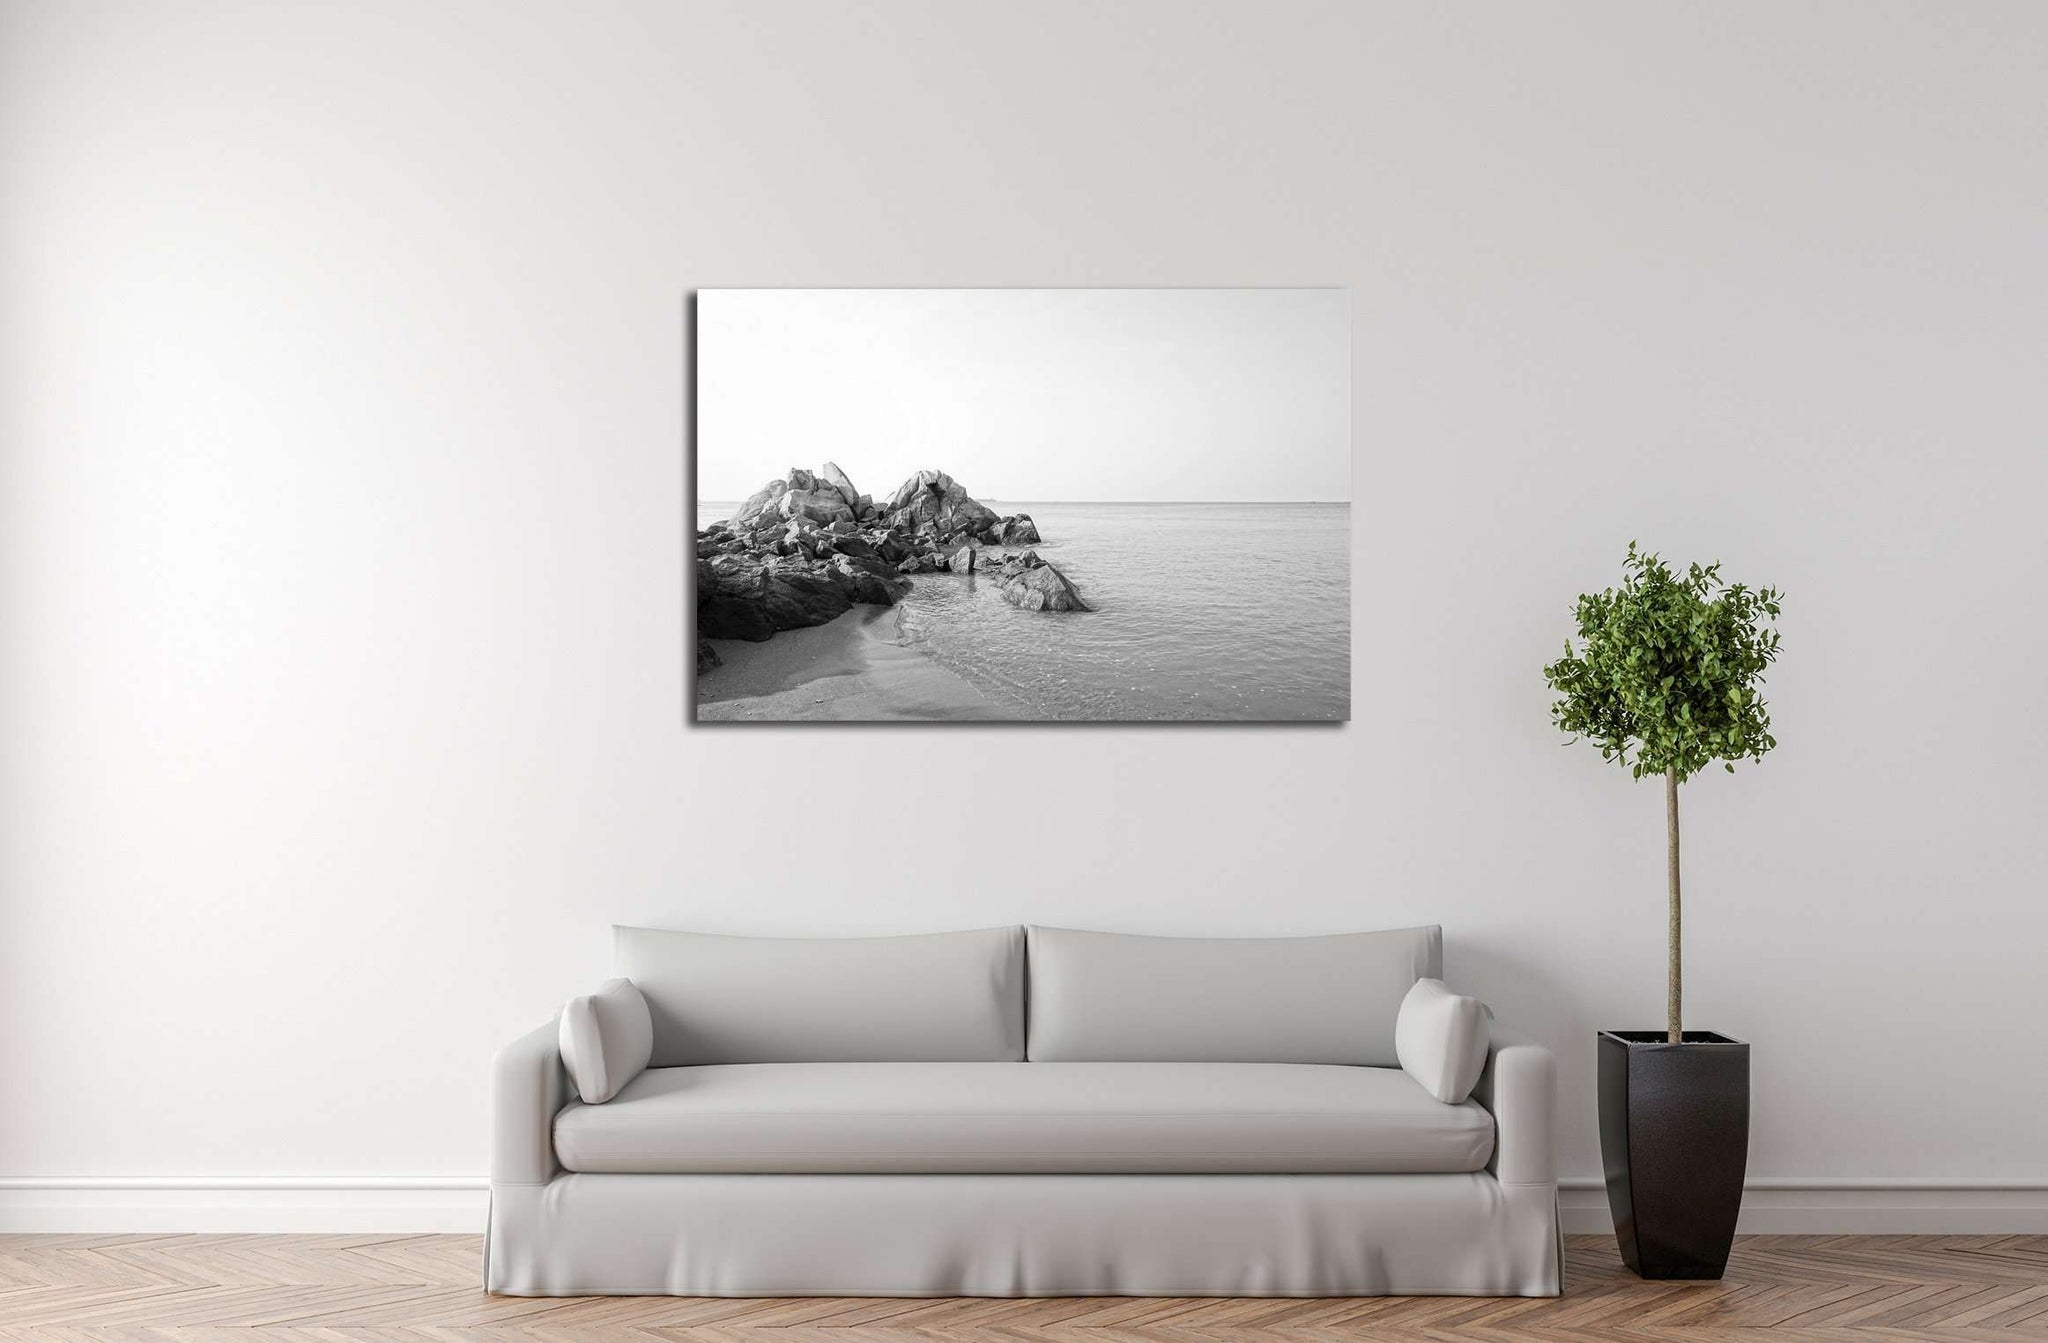 Beautiful long exposure shot of seascape with unique rock seaside in black and white №3146 Ready to Hang Canvas Print